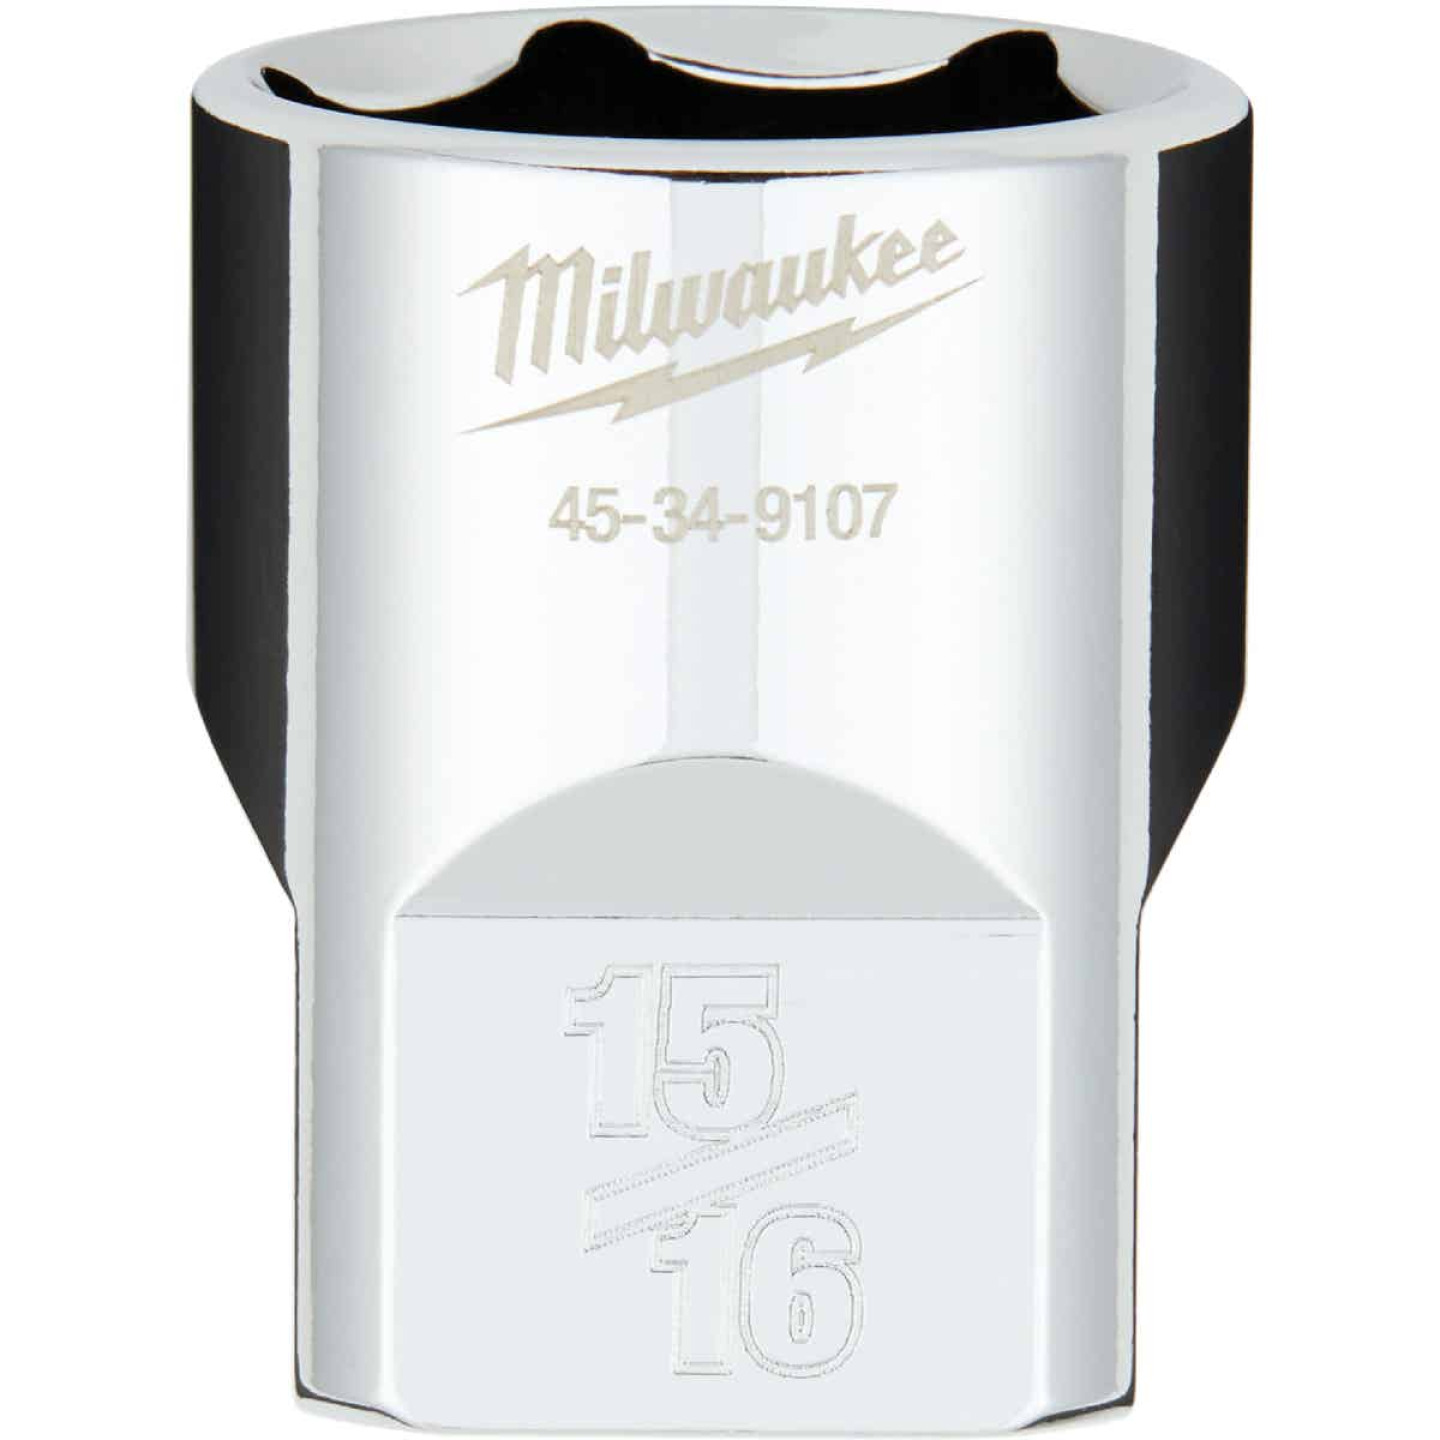 Milwaukee 1/2 In. Drive 15/16 In. 6-Point Shallow Standard Socket with FOUR FLAT Sides Image 1